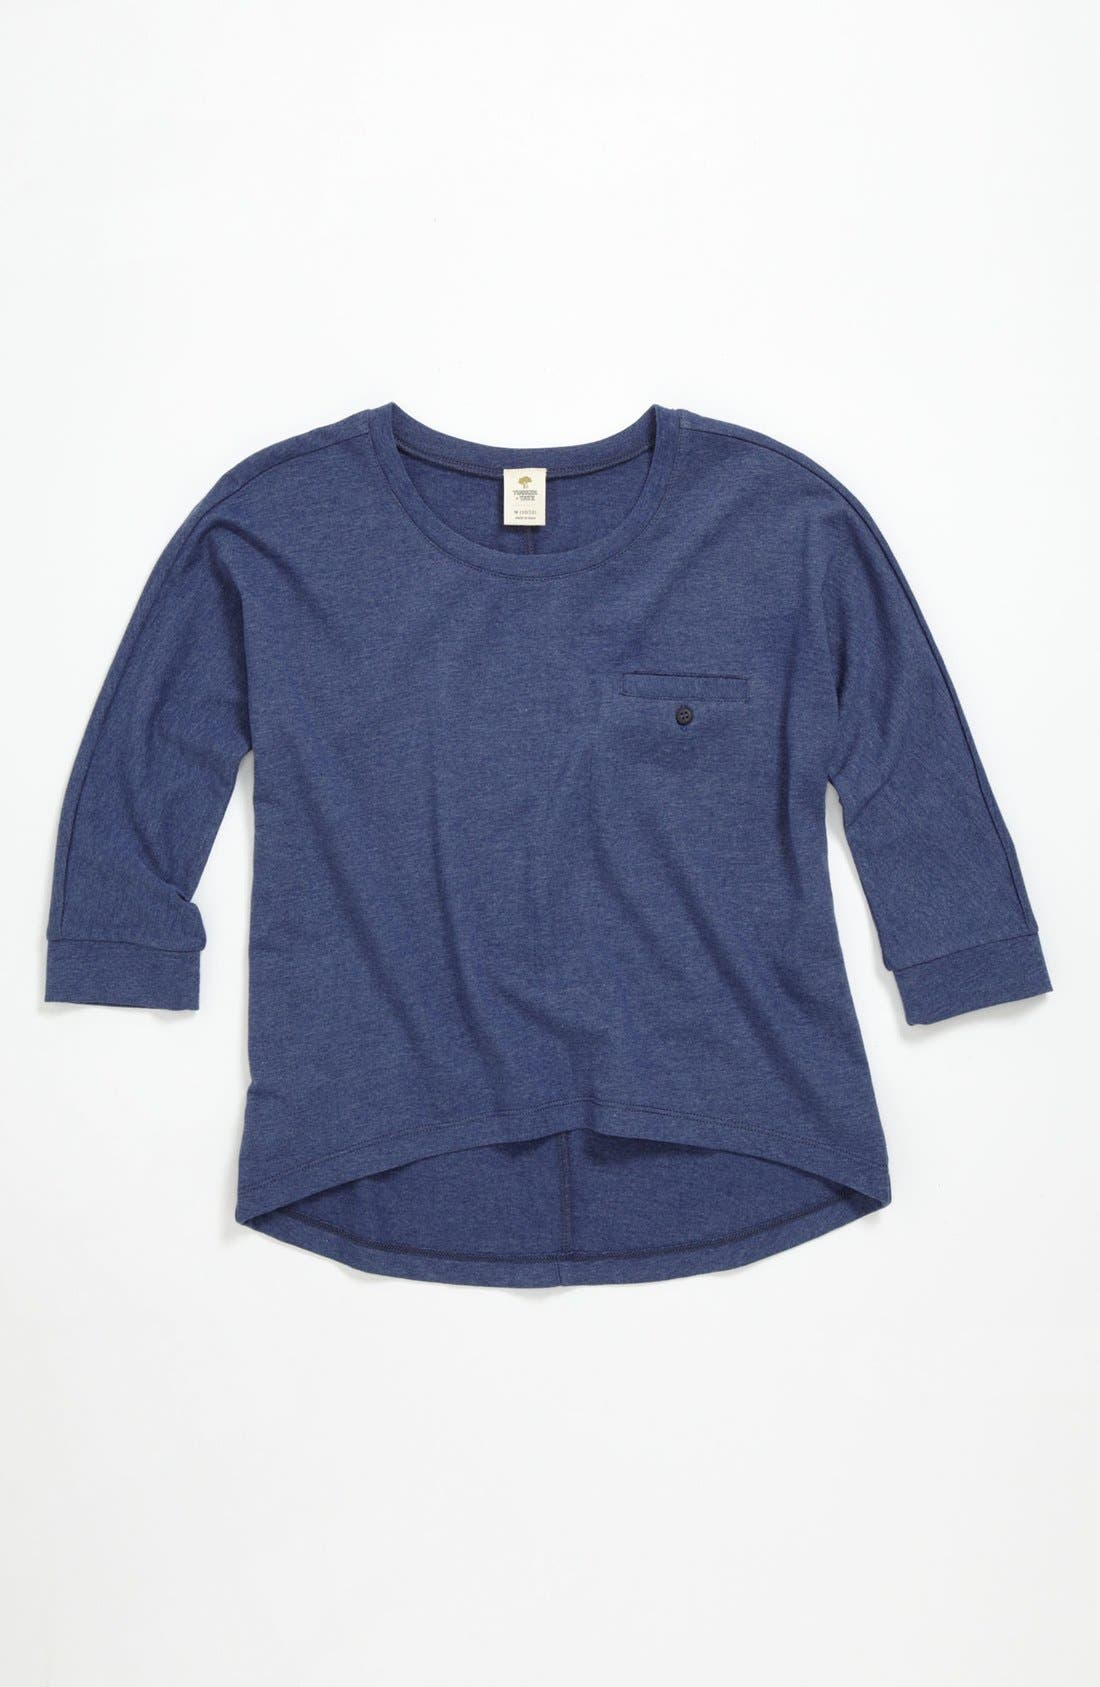 Alternate Image 1 Selected - Tucker + Tate 'Gena' Knit Top (Big Girls)